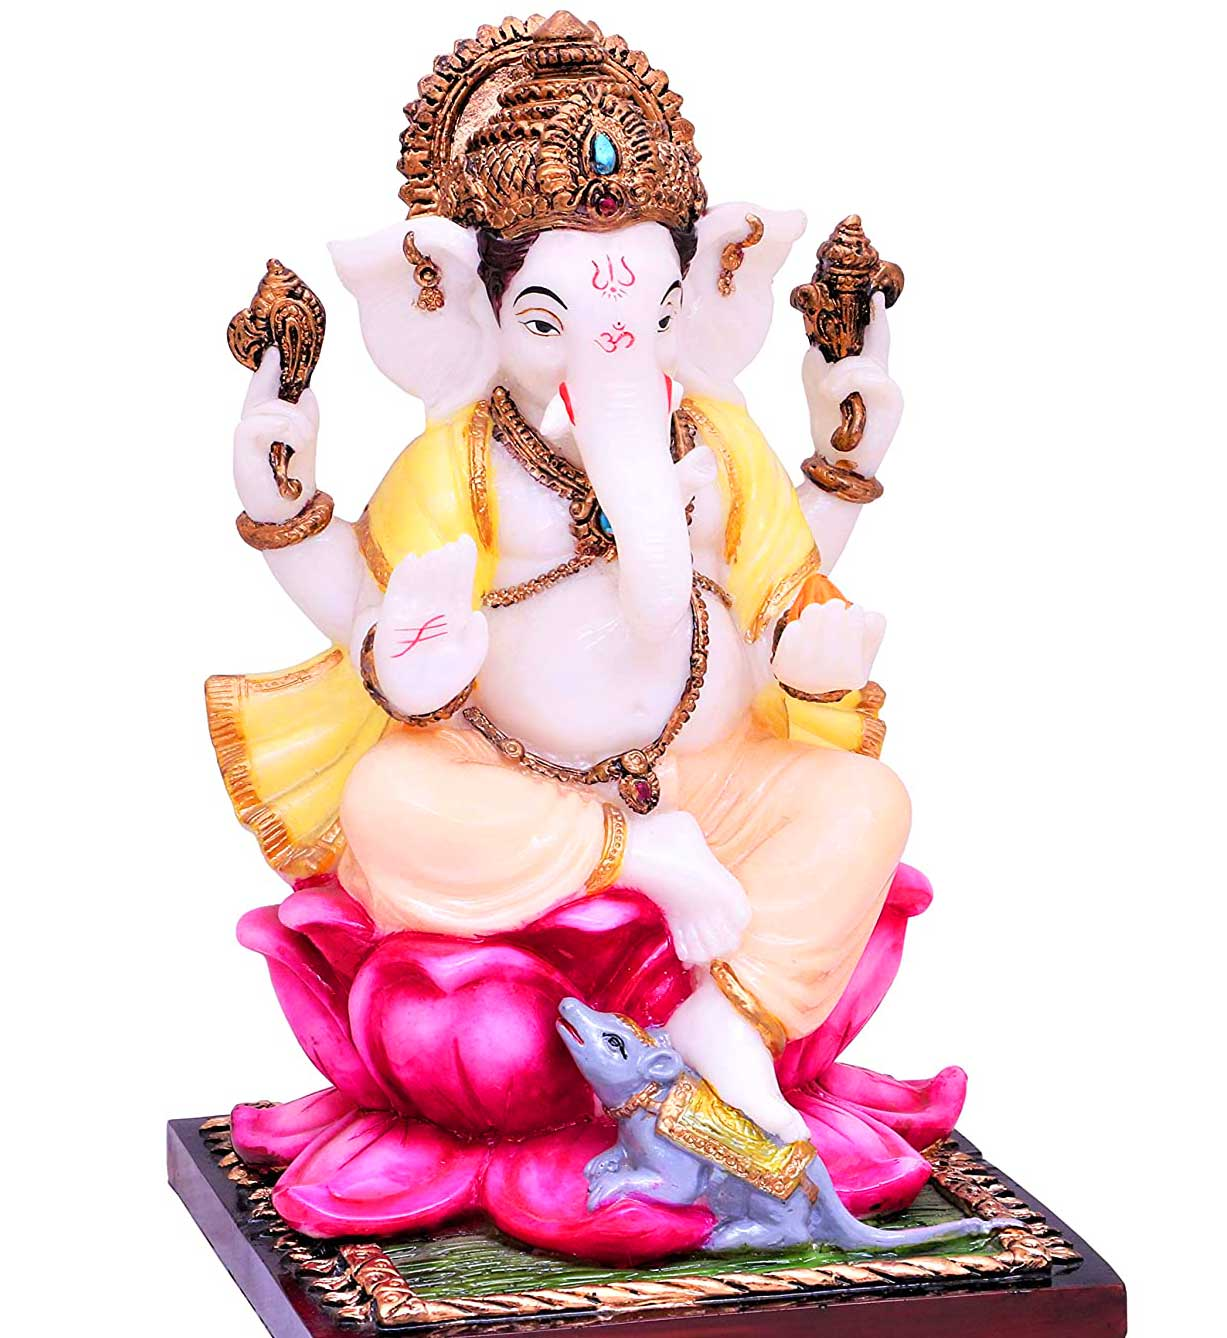 Hindu God Images For Android Mobile Phone Pics HD Download